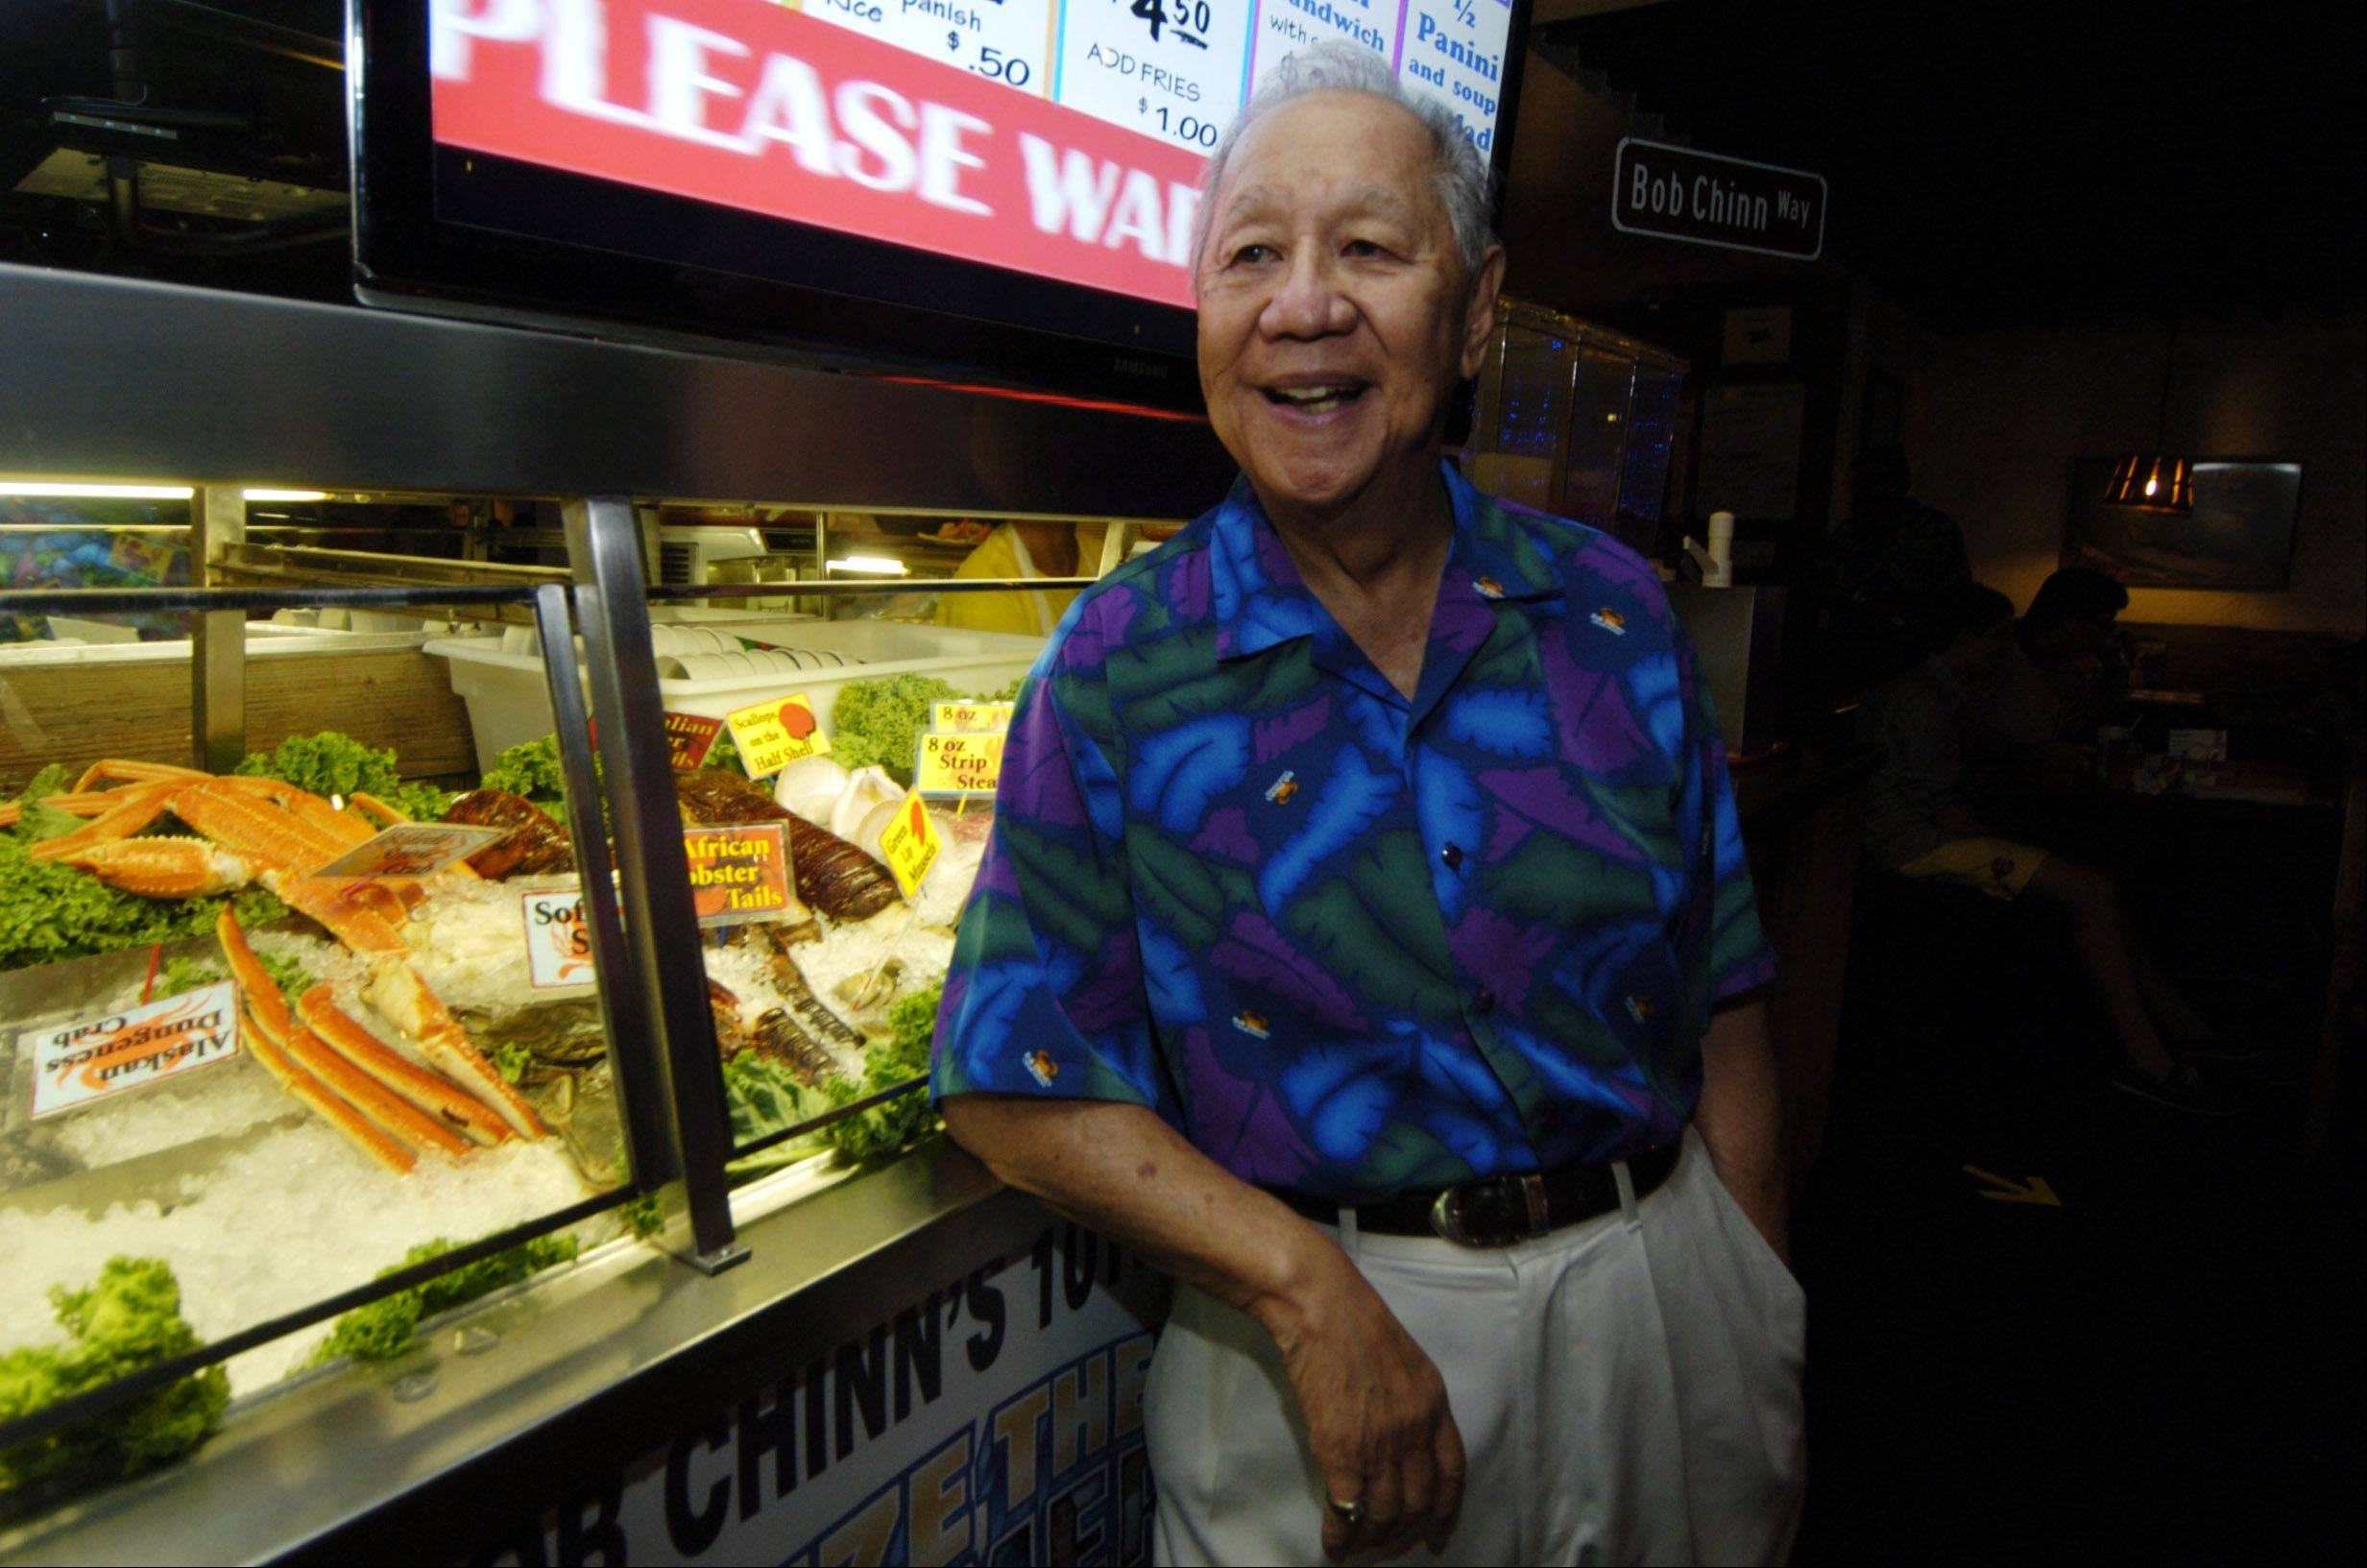 Bob Chinn, owner of Bob Chinn's Crab House in Wheeling, which has been named the top-grossing restaurant in the U.S.